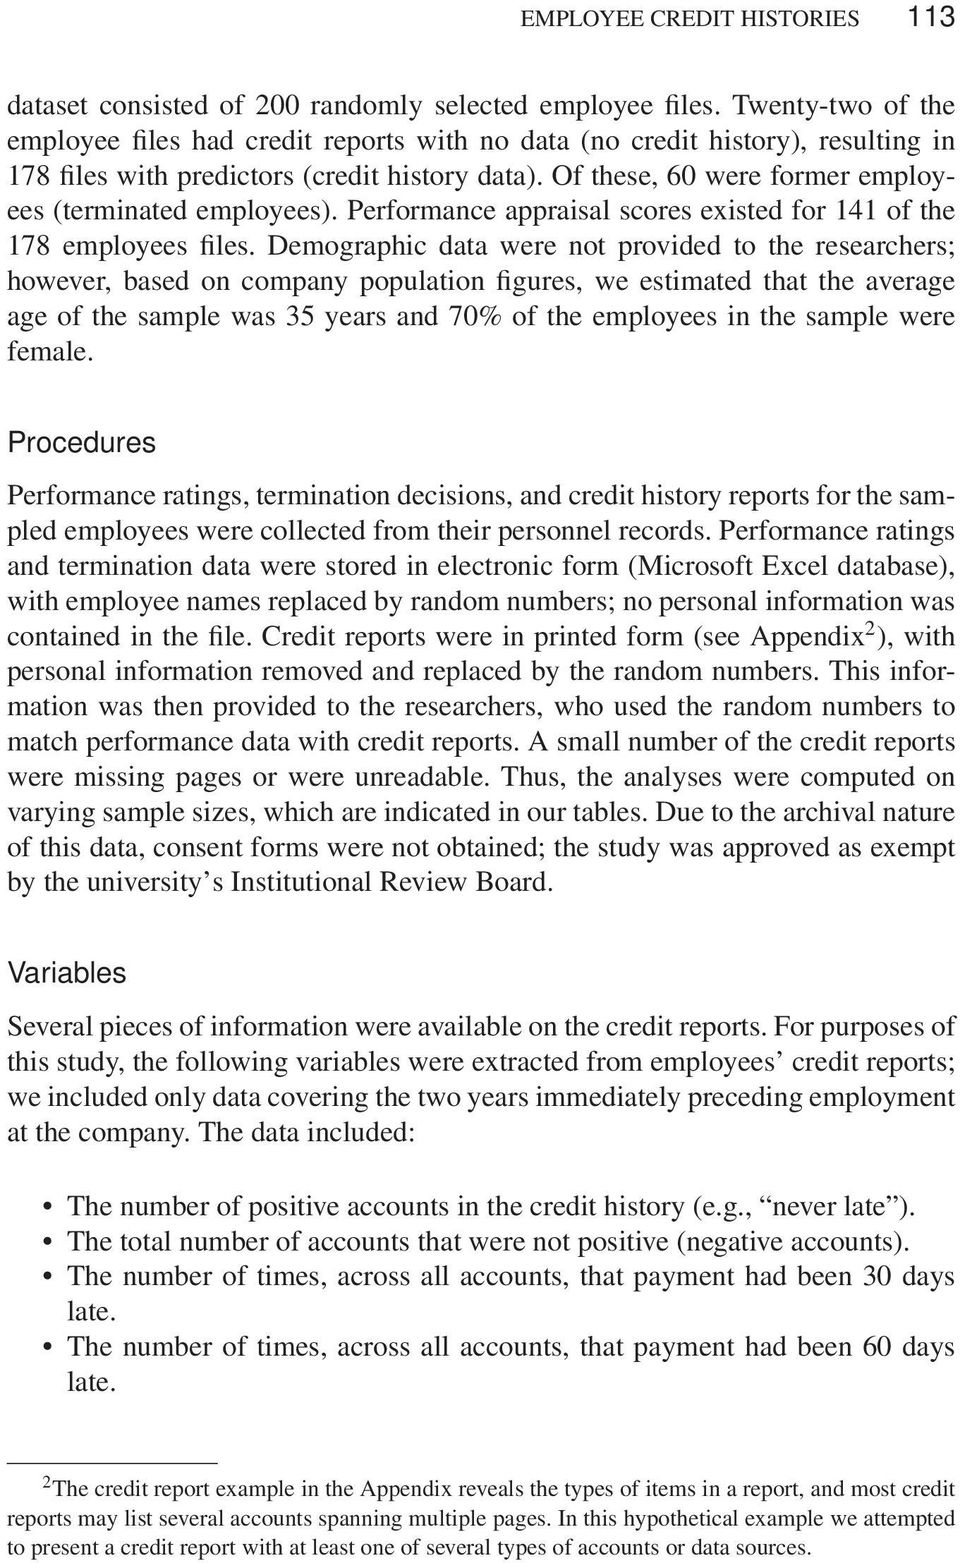 Of these, 60 were former employees (terminated employees). Performance appraisal scores existed for 141 of the 178 employees files.